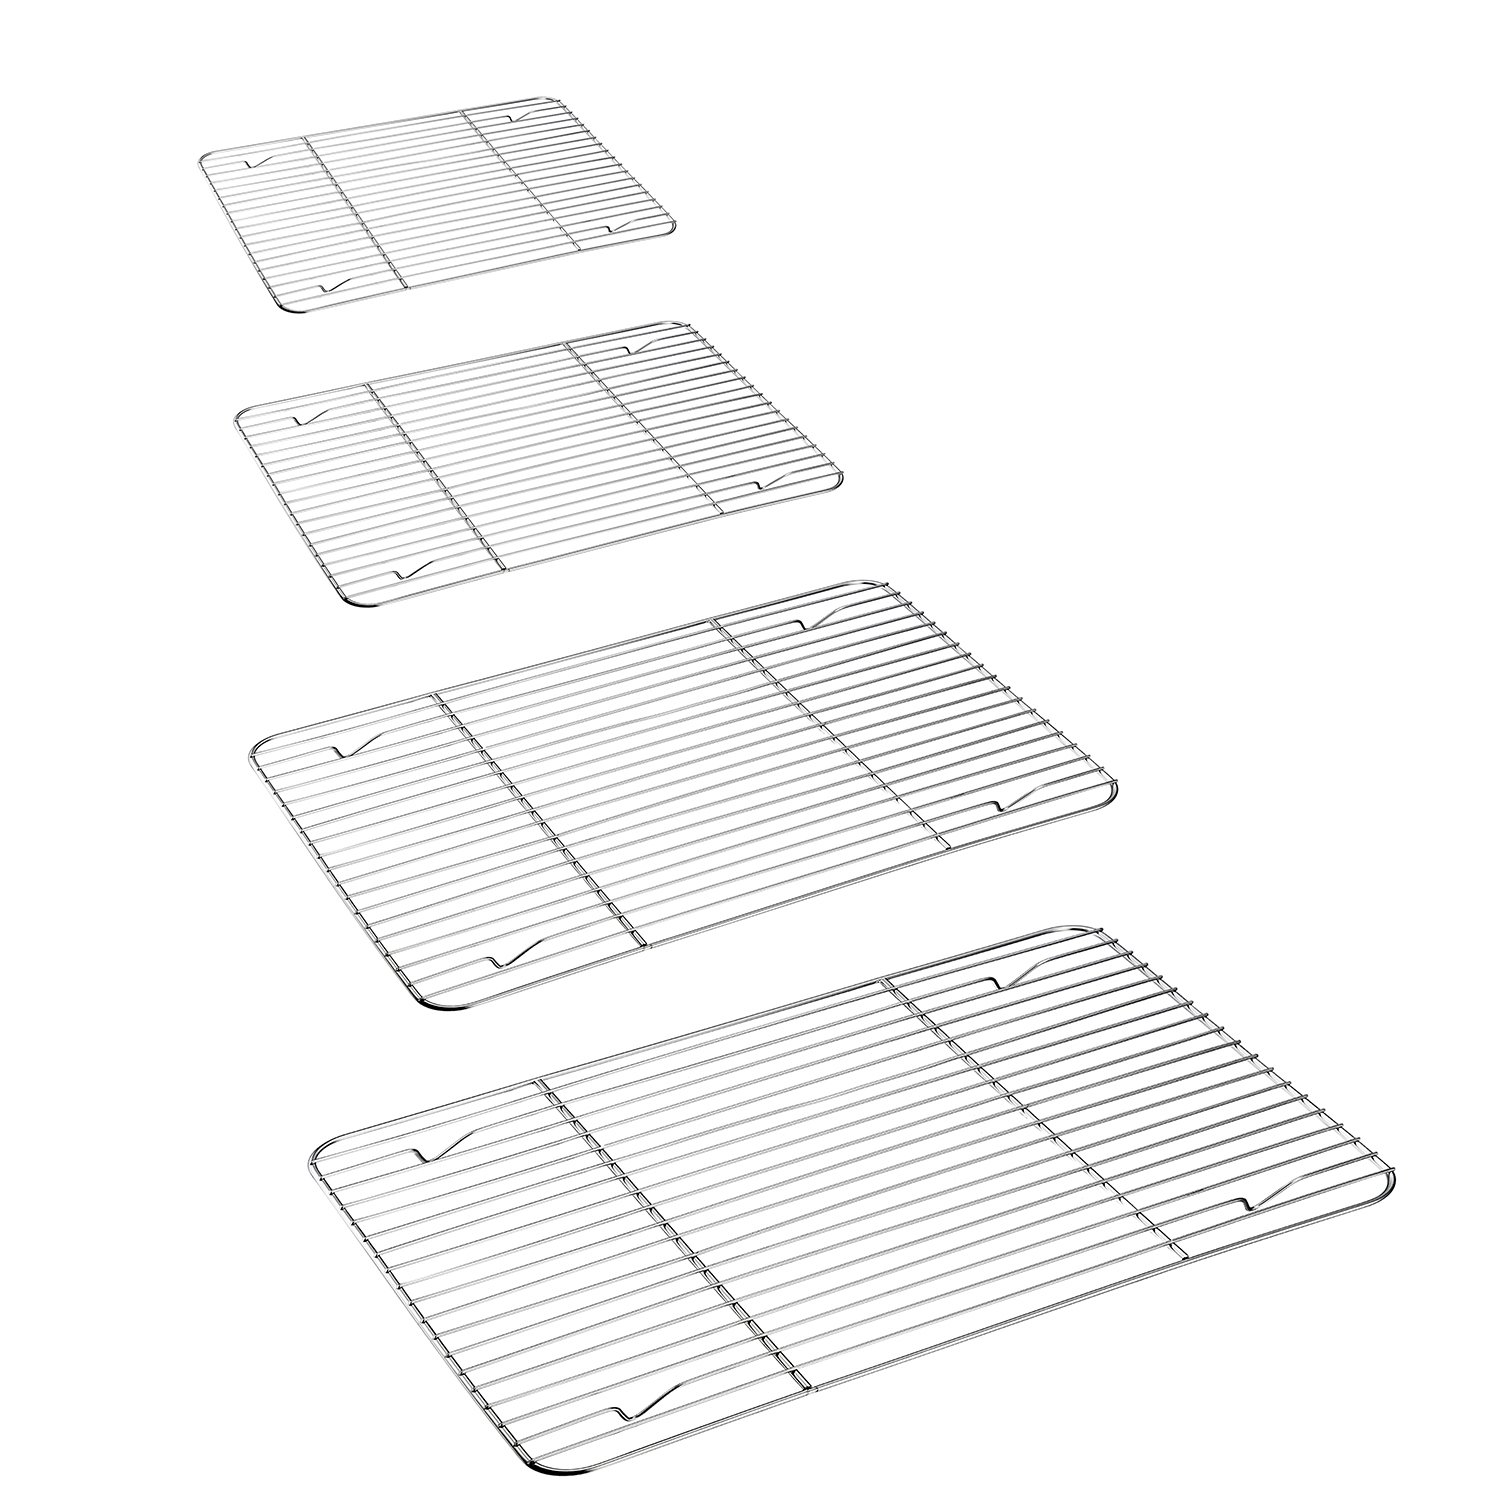 Cooling Rack 4 Pack, P&P Chef Stainless Steel Baking Rack for Cooking, Baking, Roasting, Grilling, Fit Various Size Cookie Sheets - Oven & Dishwasher Safe